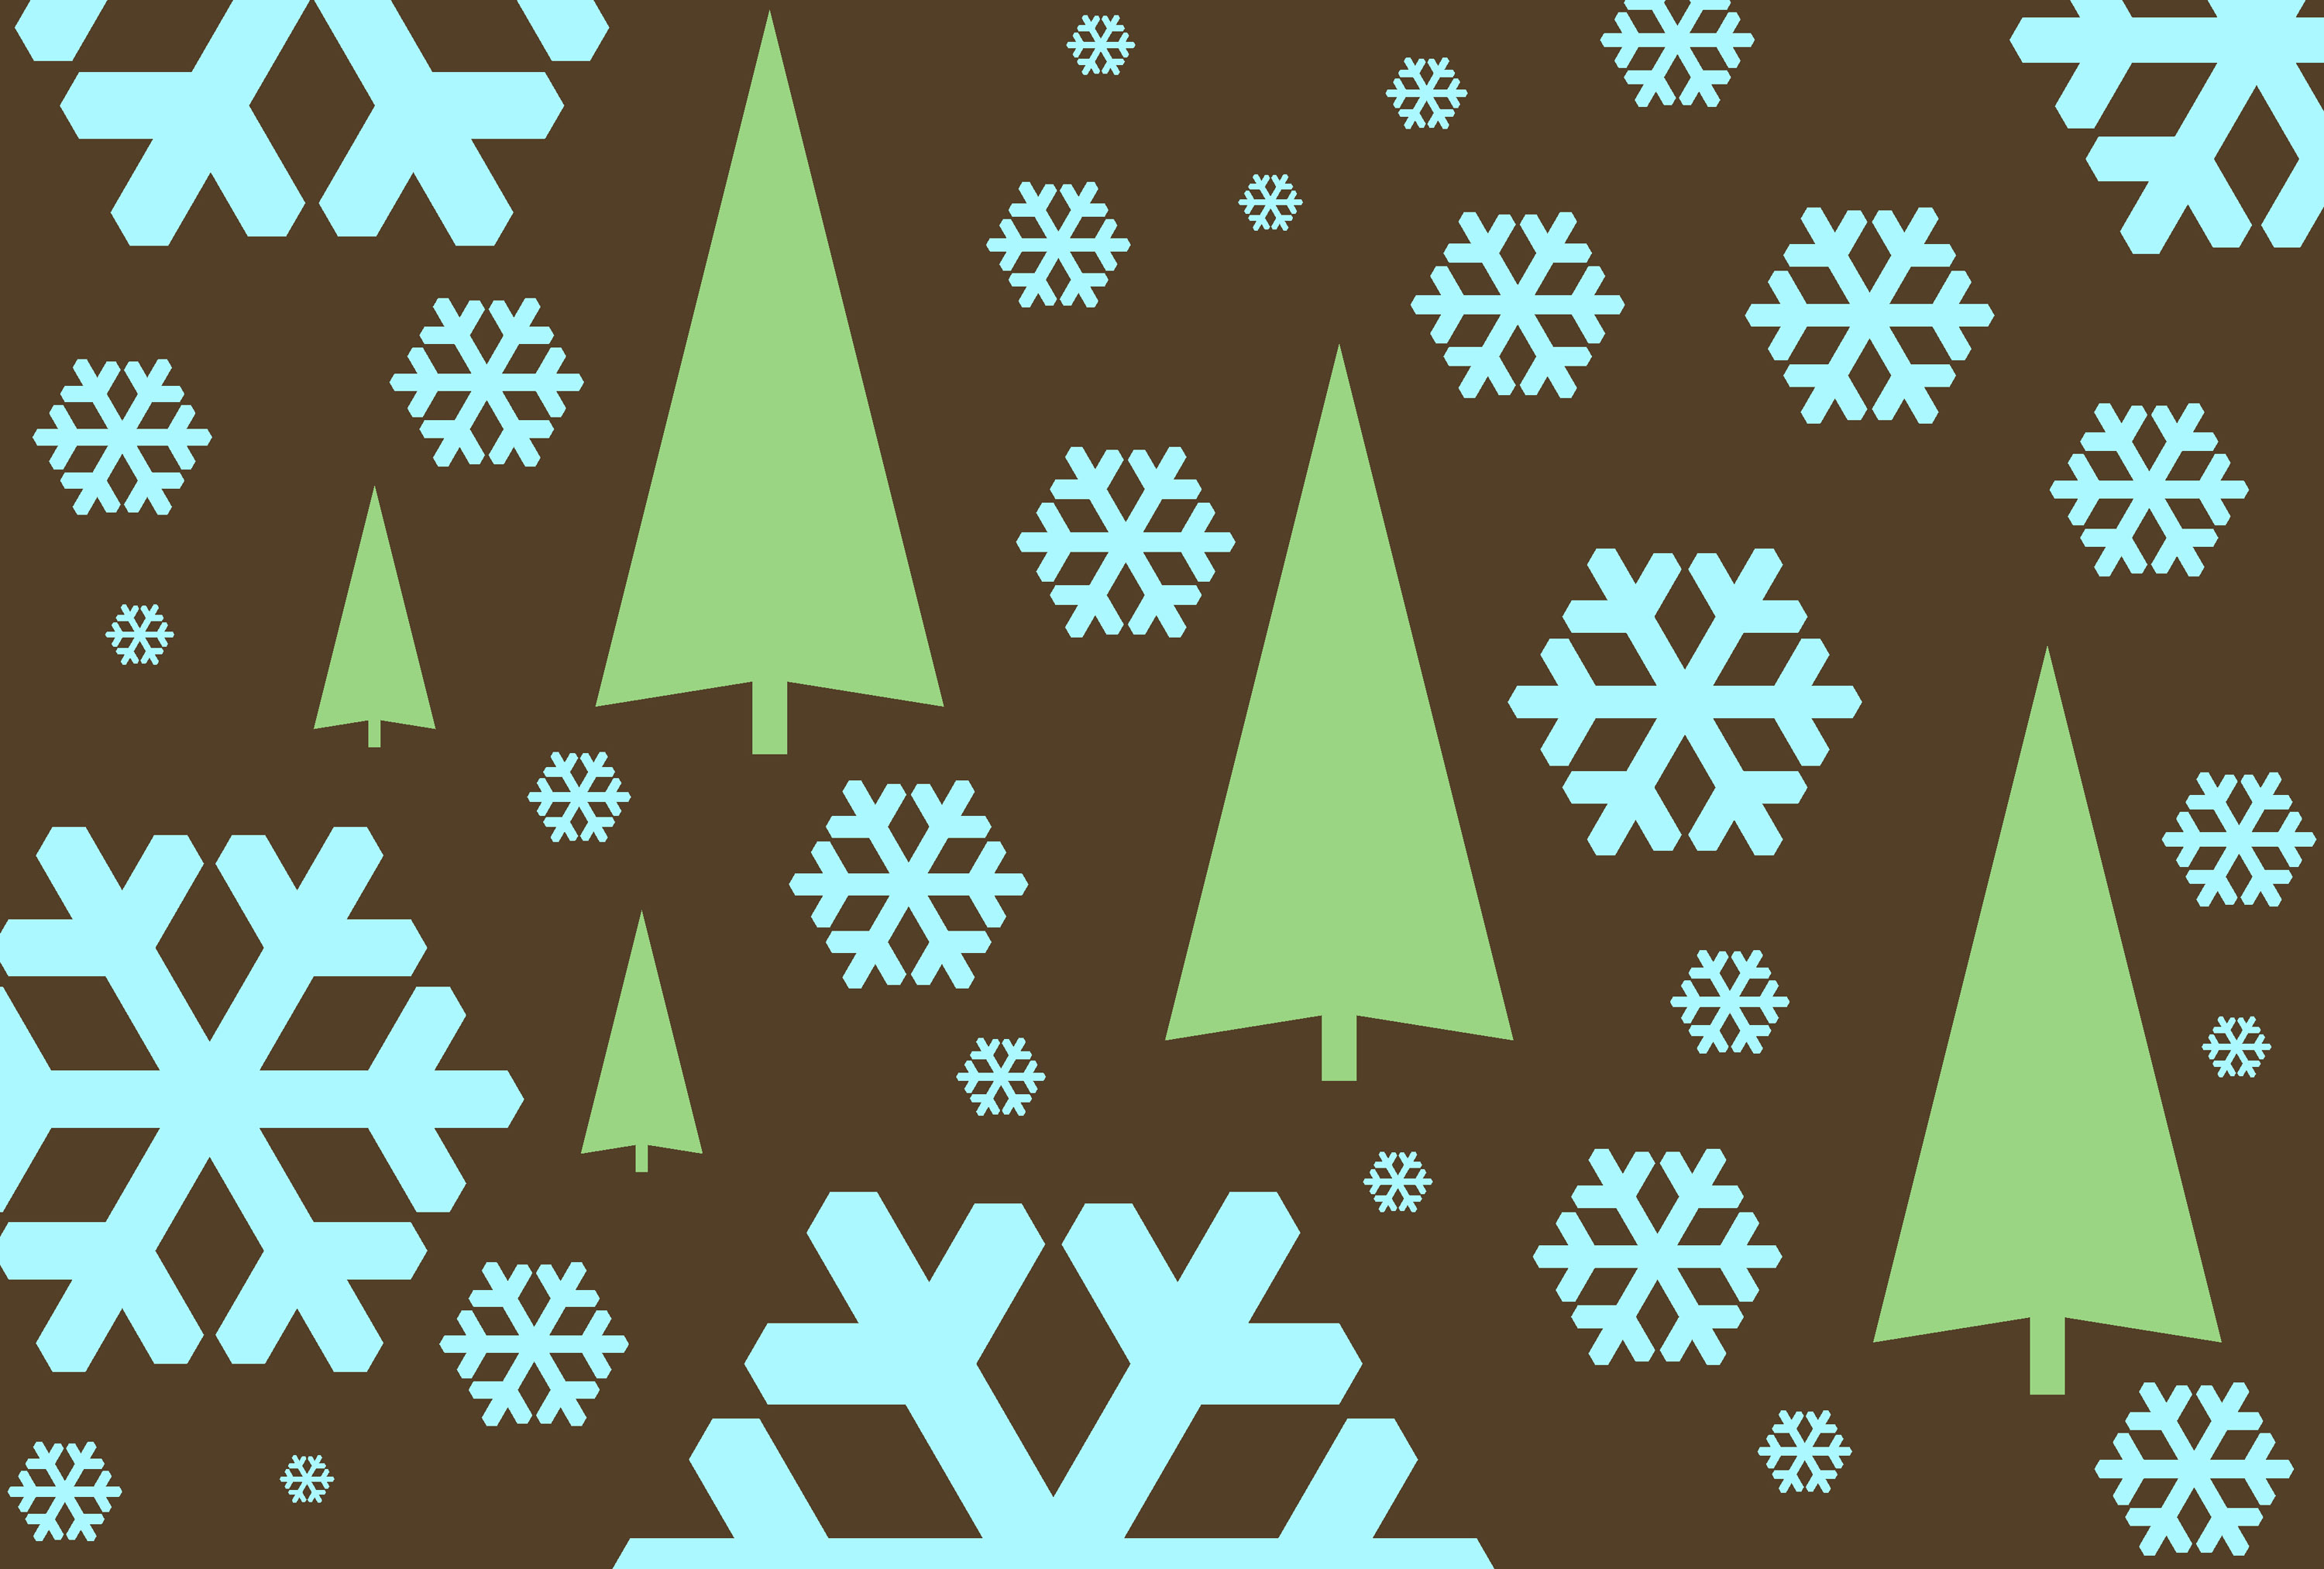 snowflake symbols and tree create festive winter themed background